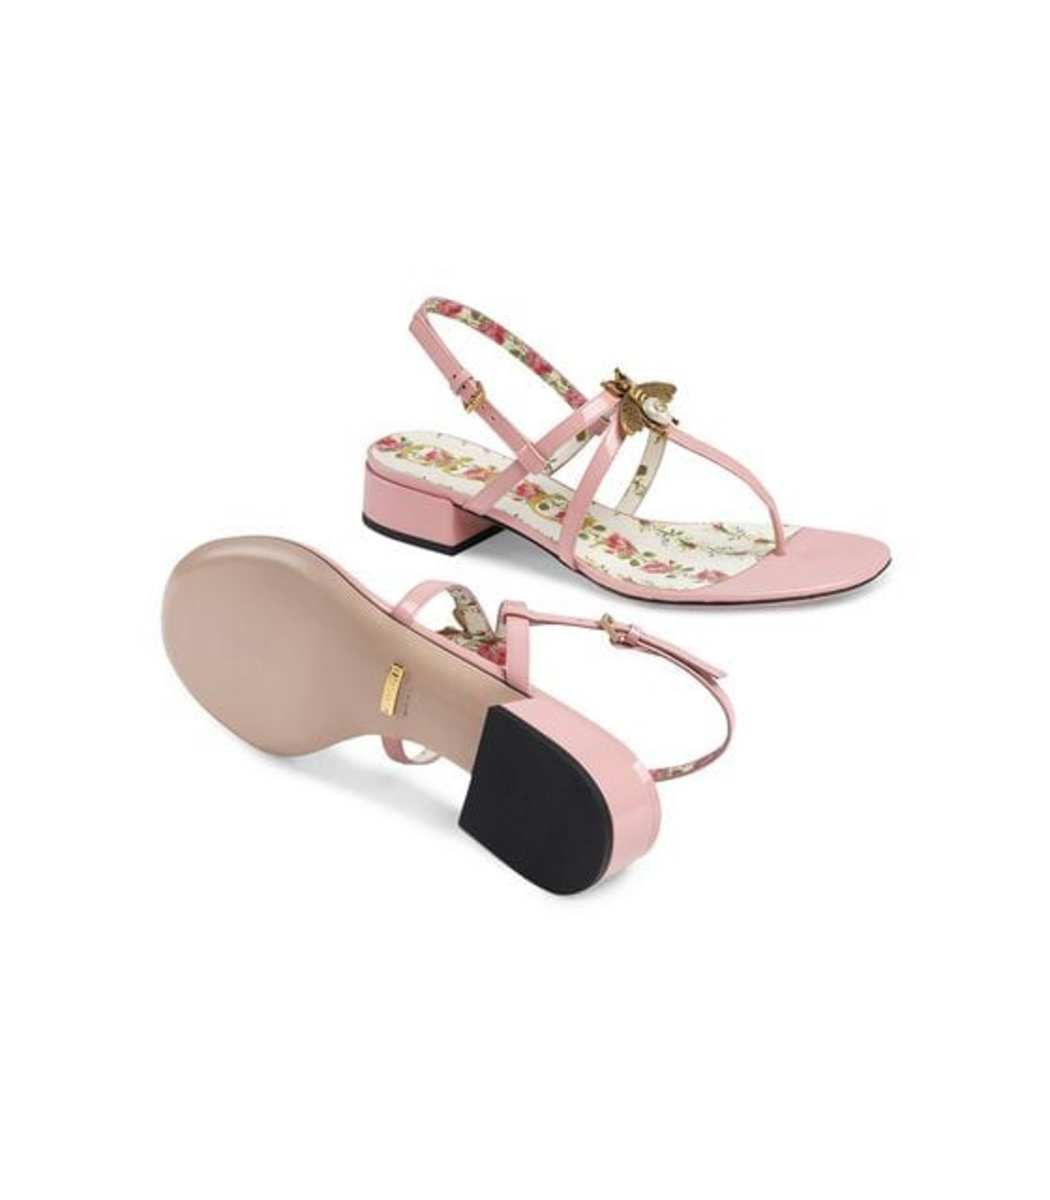 57b0fd7a82e Gucci Bee Patent Leather Sandals - Light Pink Adjustable Strap Sandals